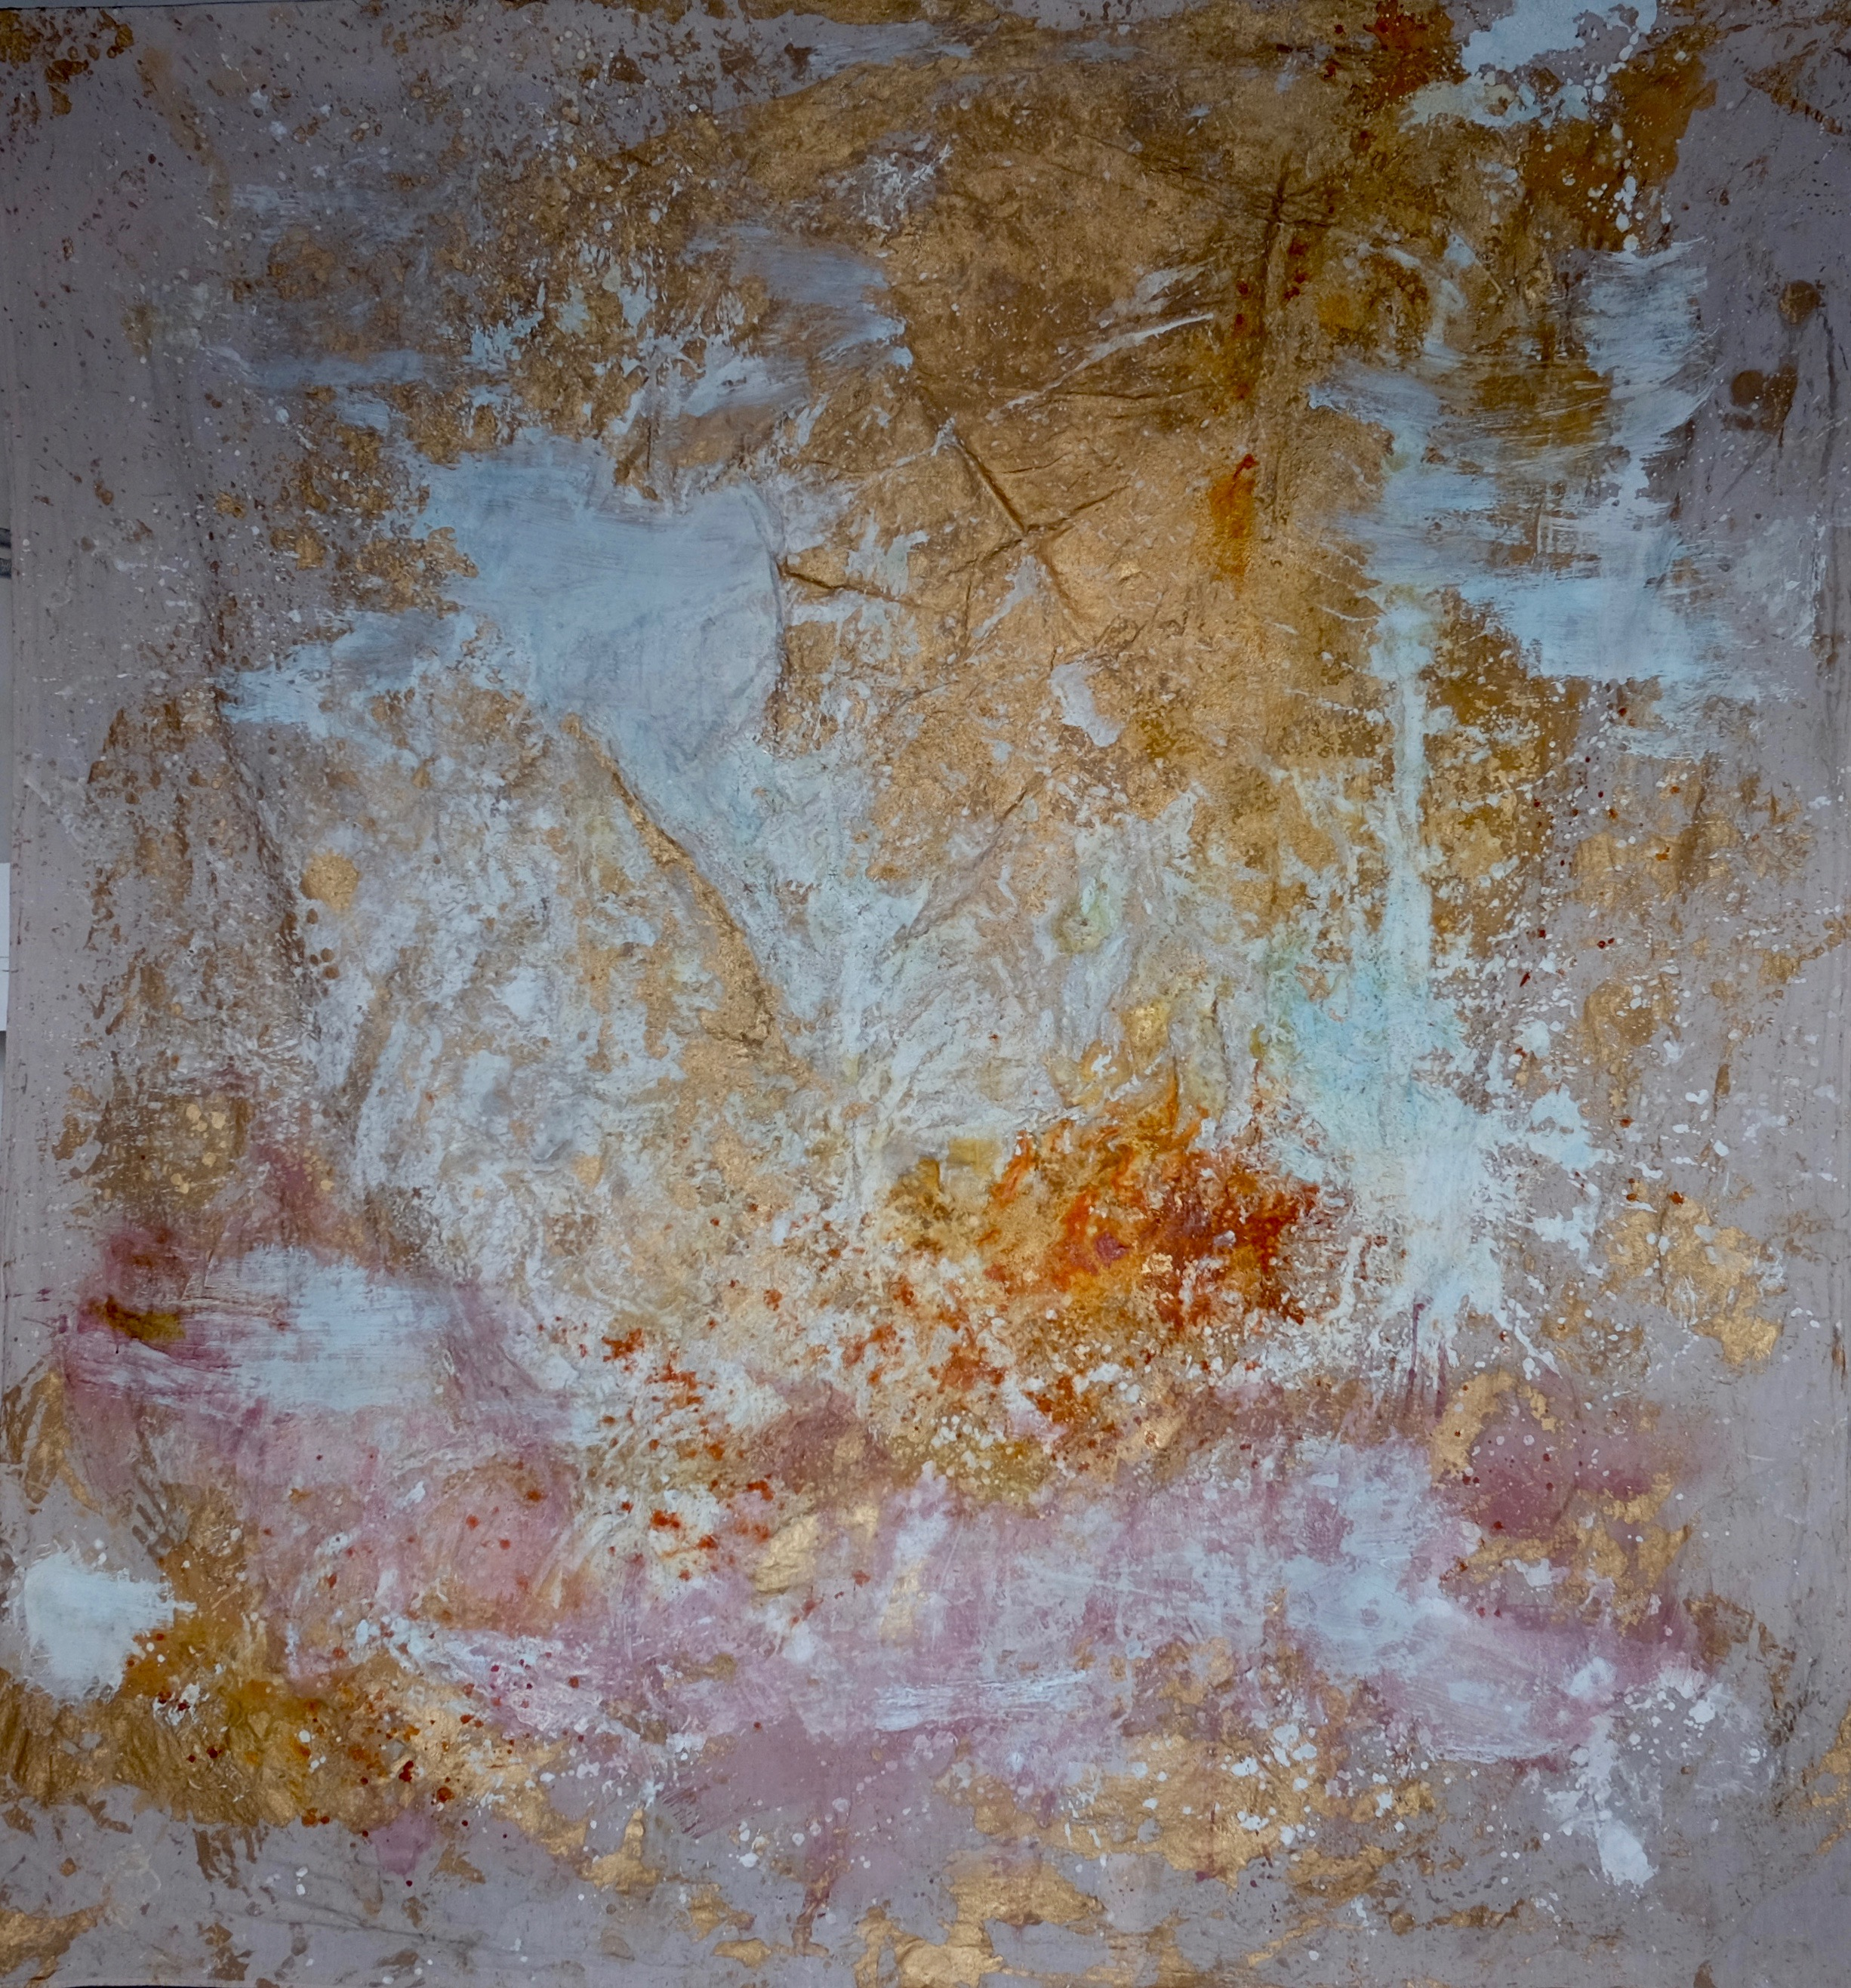 Mars 2019, 310x270 cm, mixed medias on free linen canvas